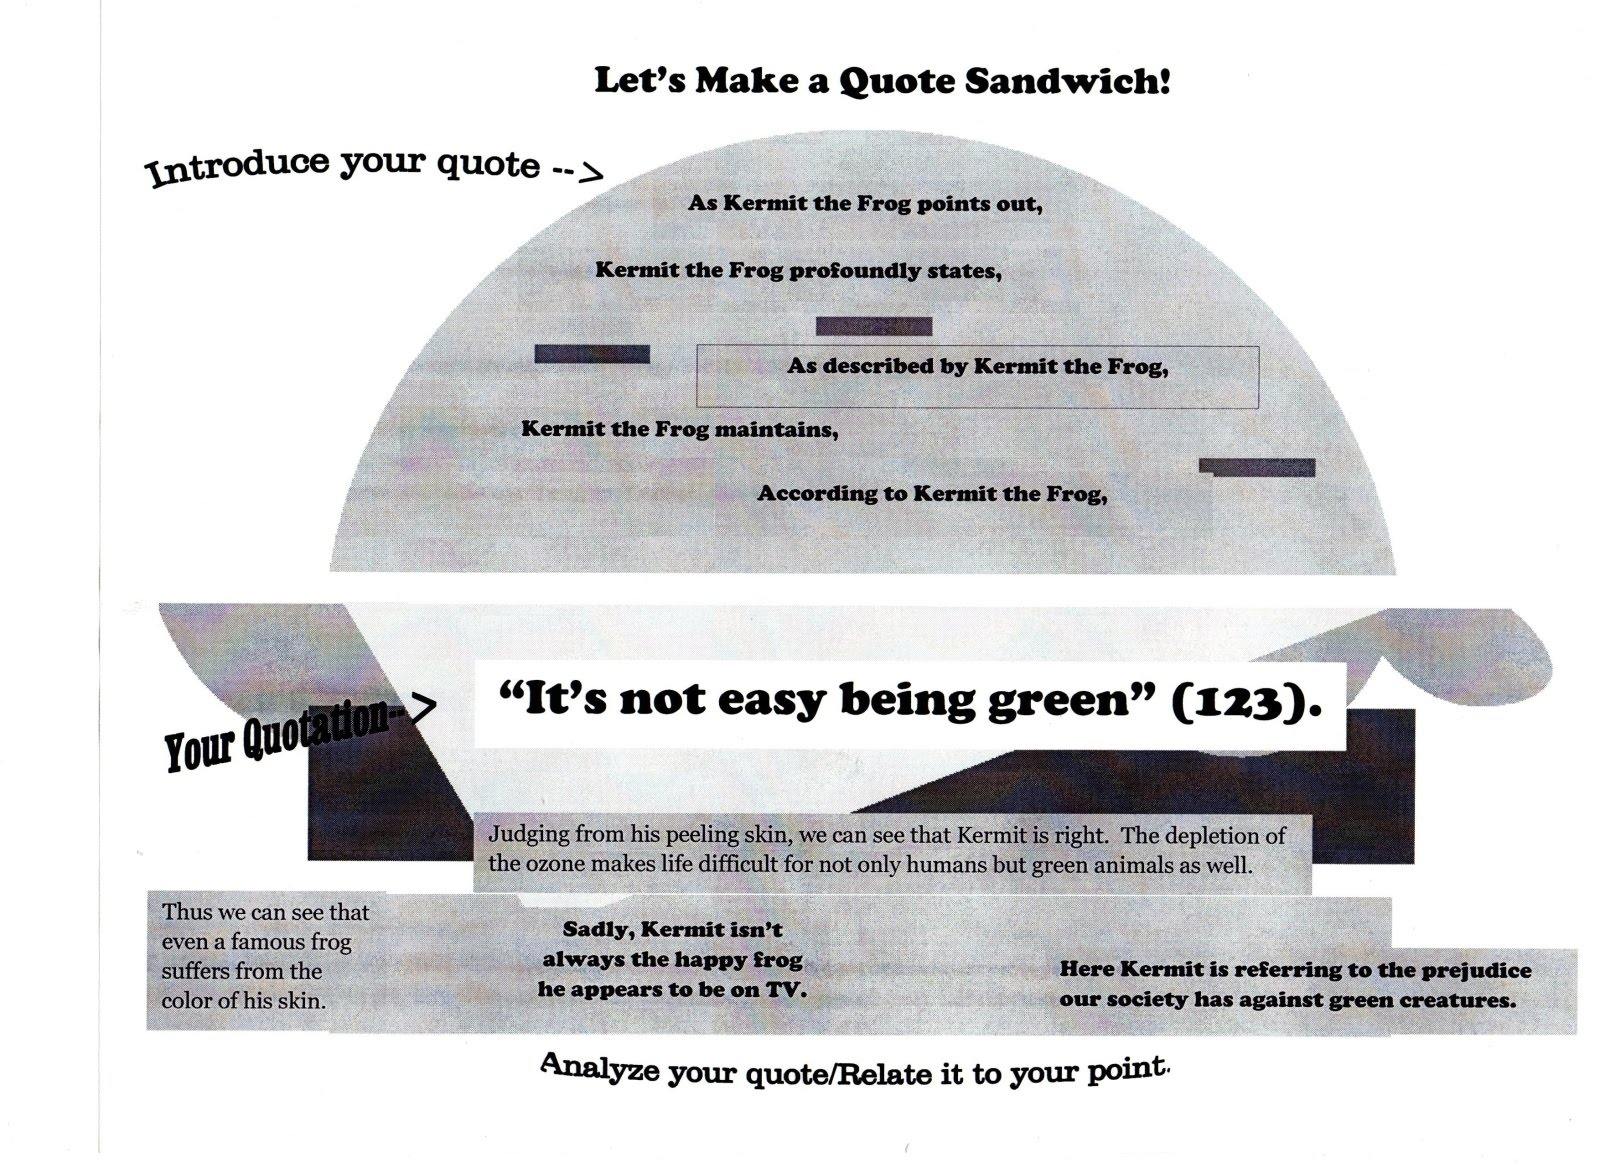 Quote sandwich essay format